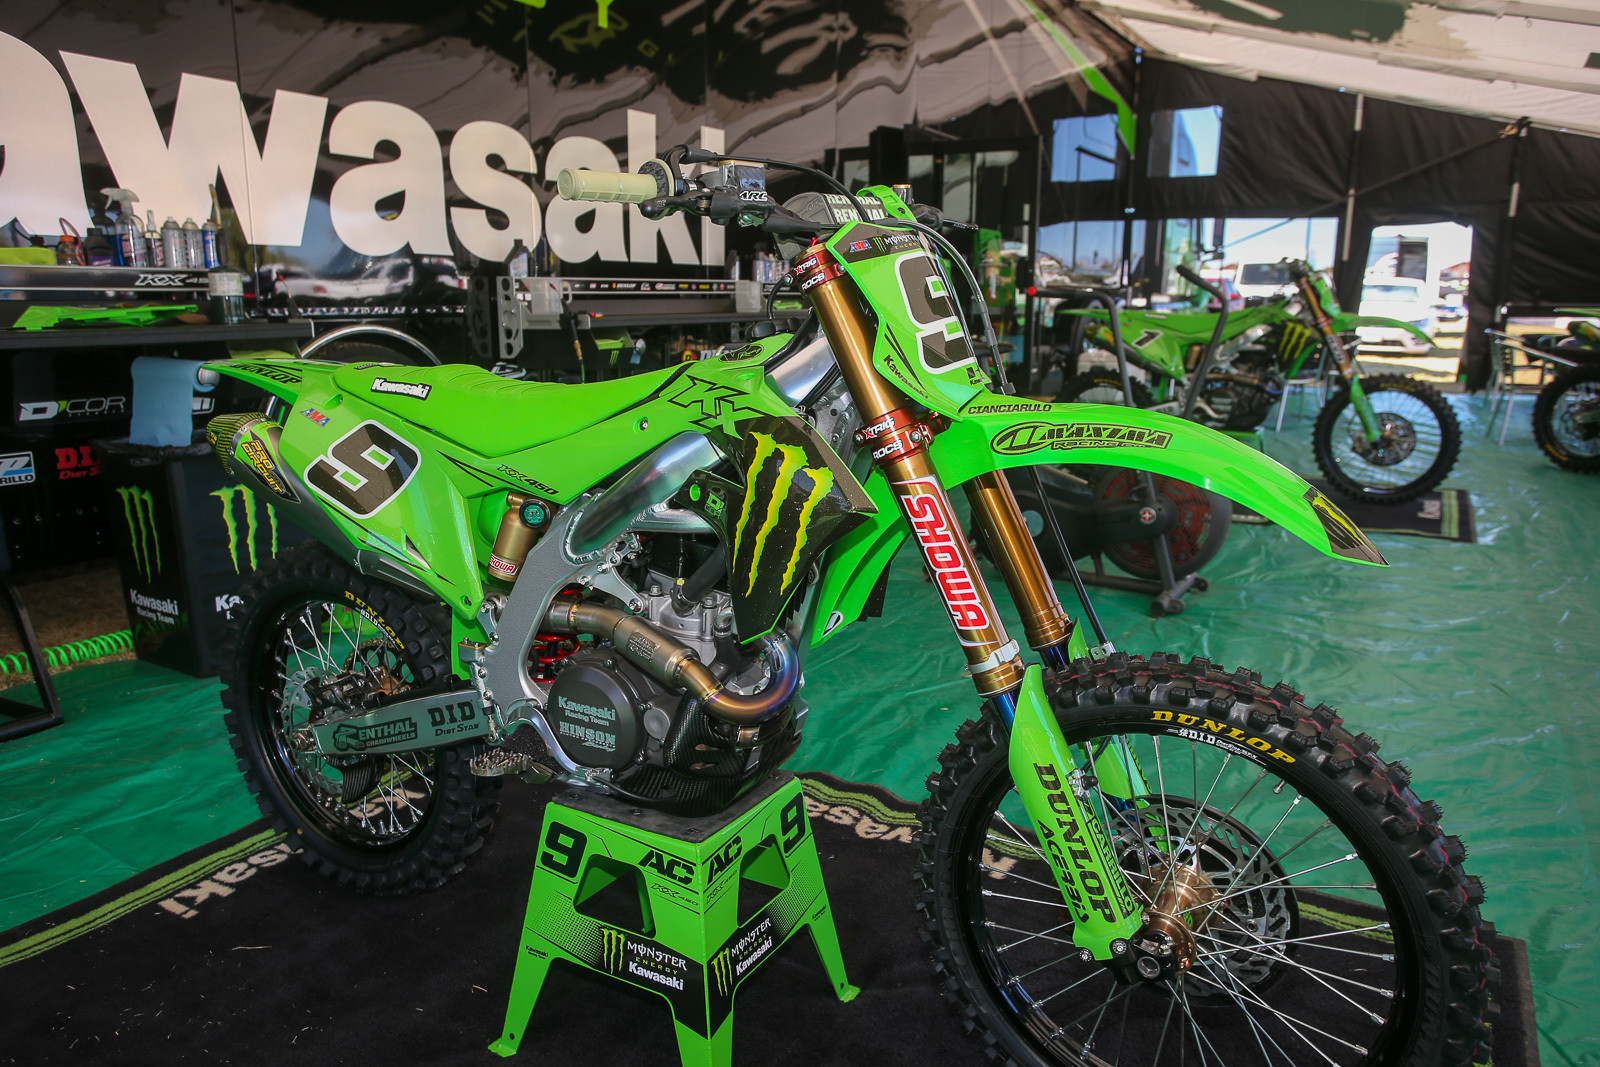 While this was the Monster Energy Cup trim for the Monster Energy Kawasaki crew, it'll still take us a minute to get used to the new number nine.